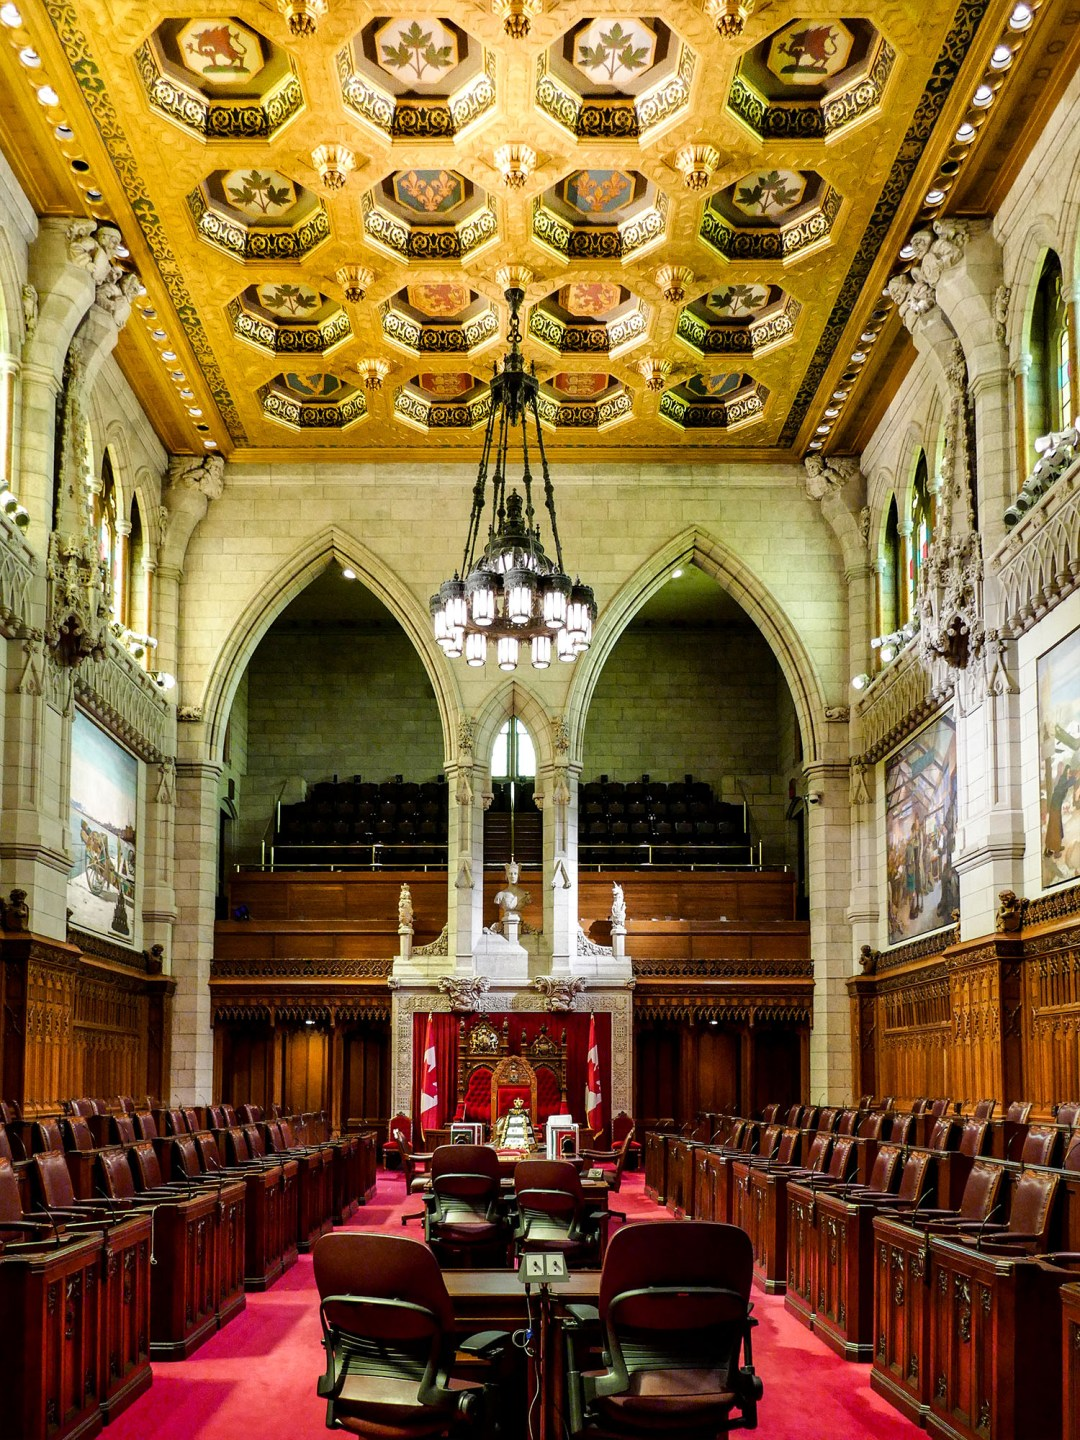 Inside the Senate on Parliament Hill for boomervoice